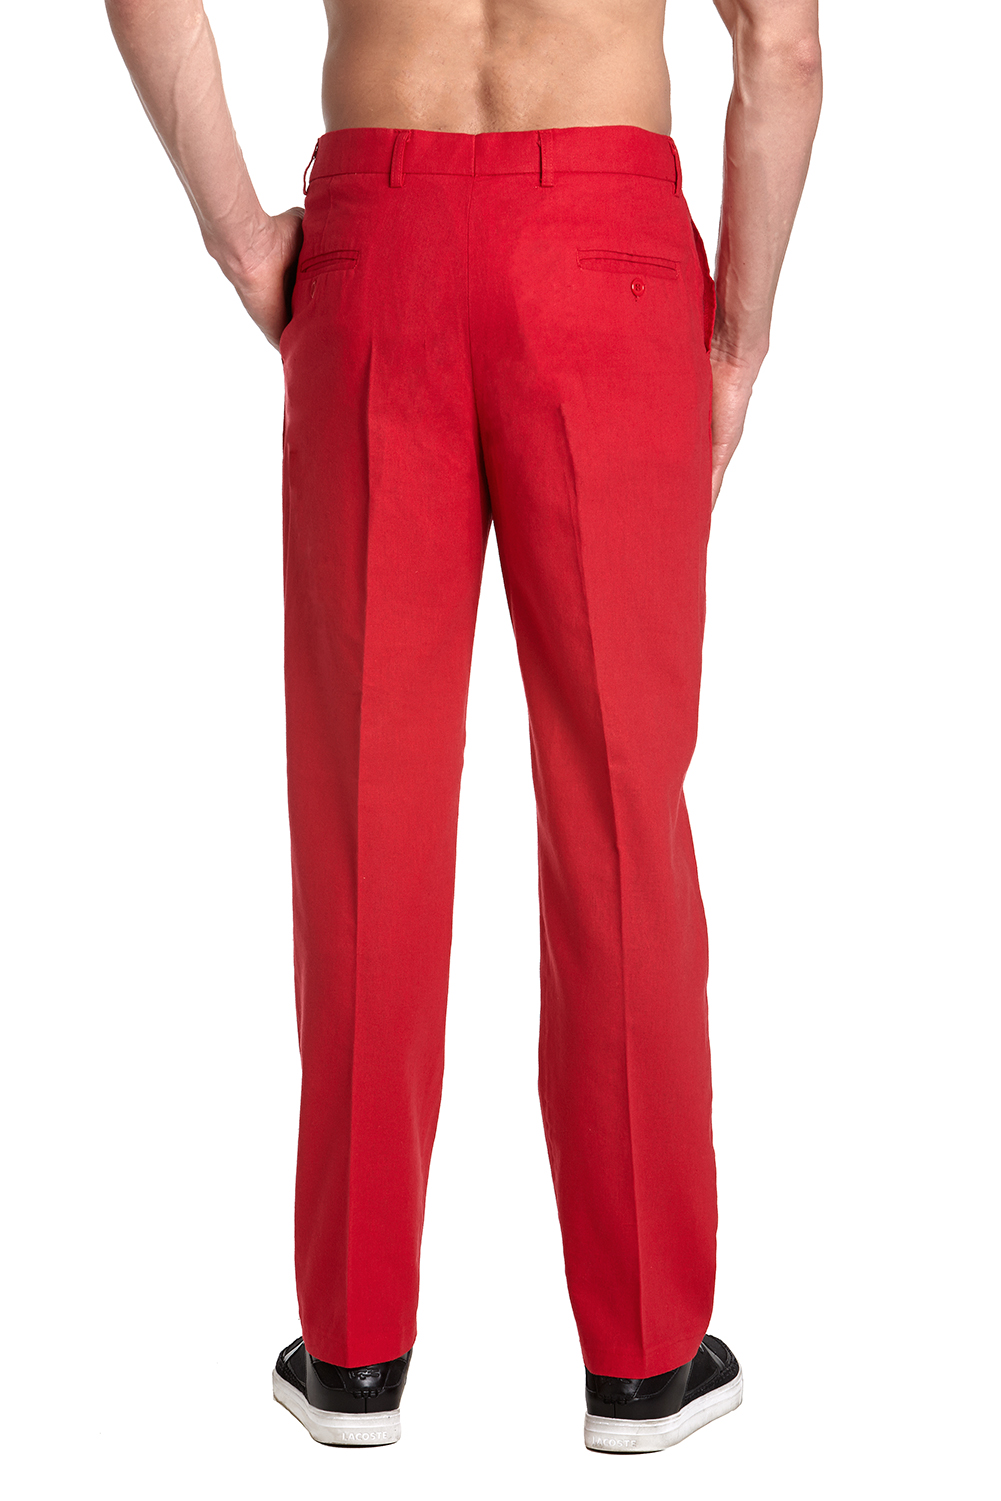 Shop men's red pants at Dockers® US for the best selection online. Dockers® - well-crafted comfort to help conquer the day.